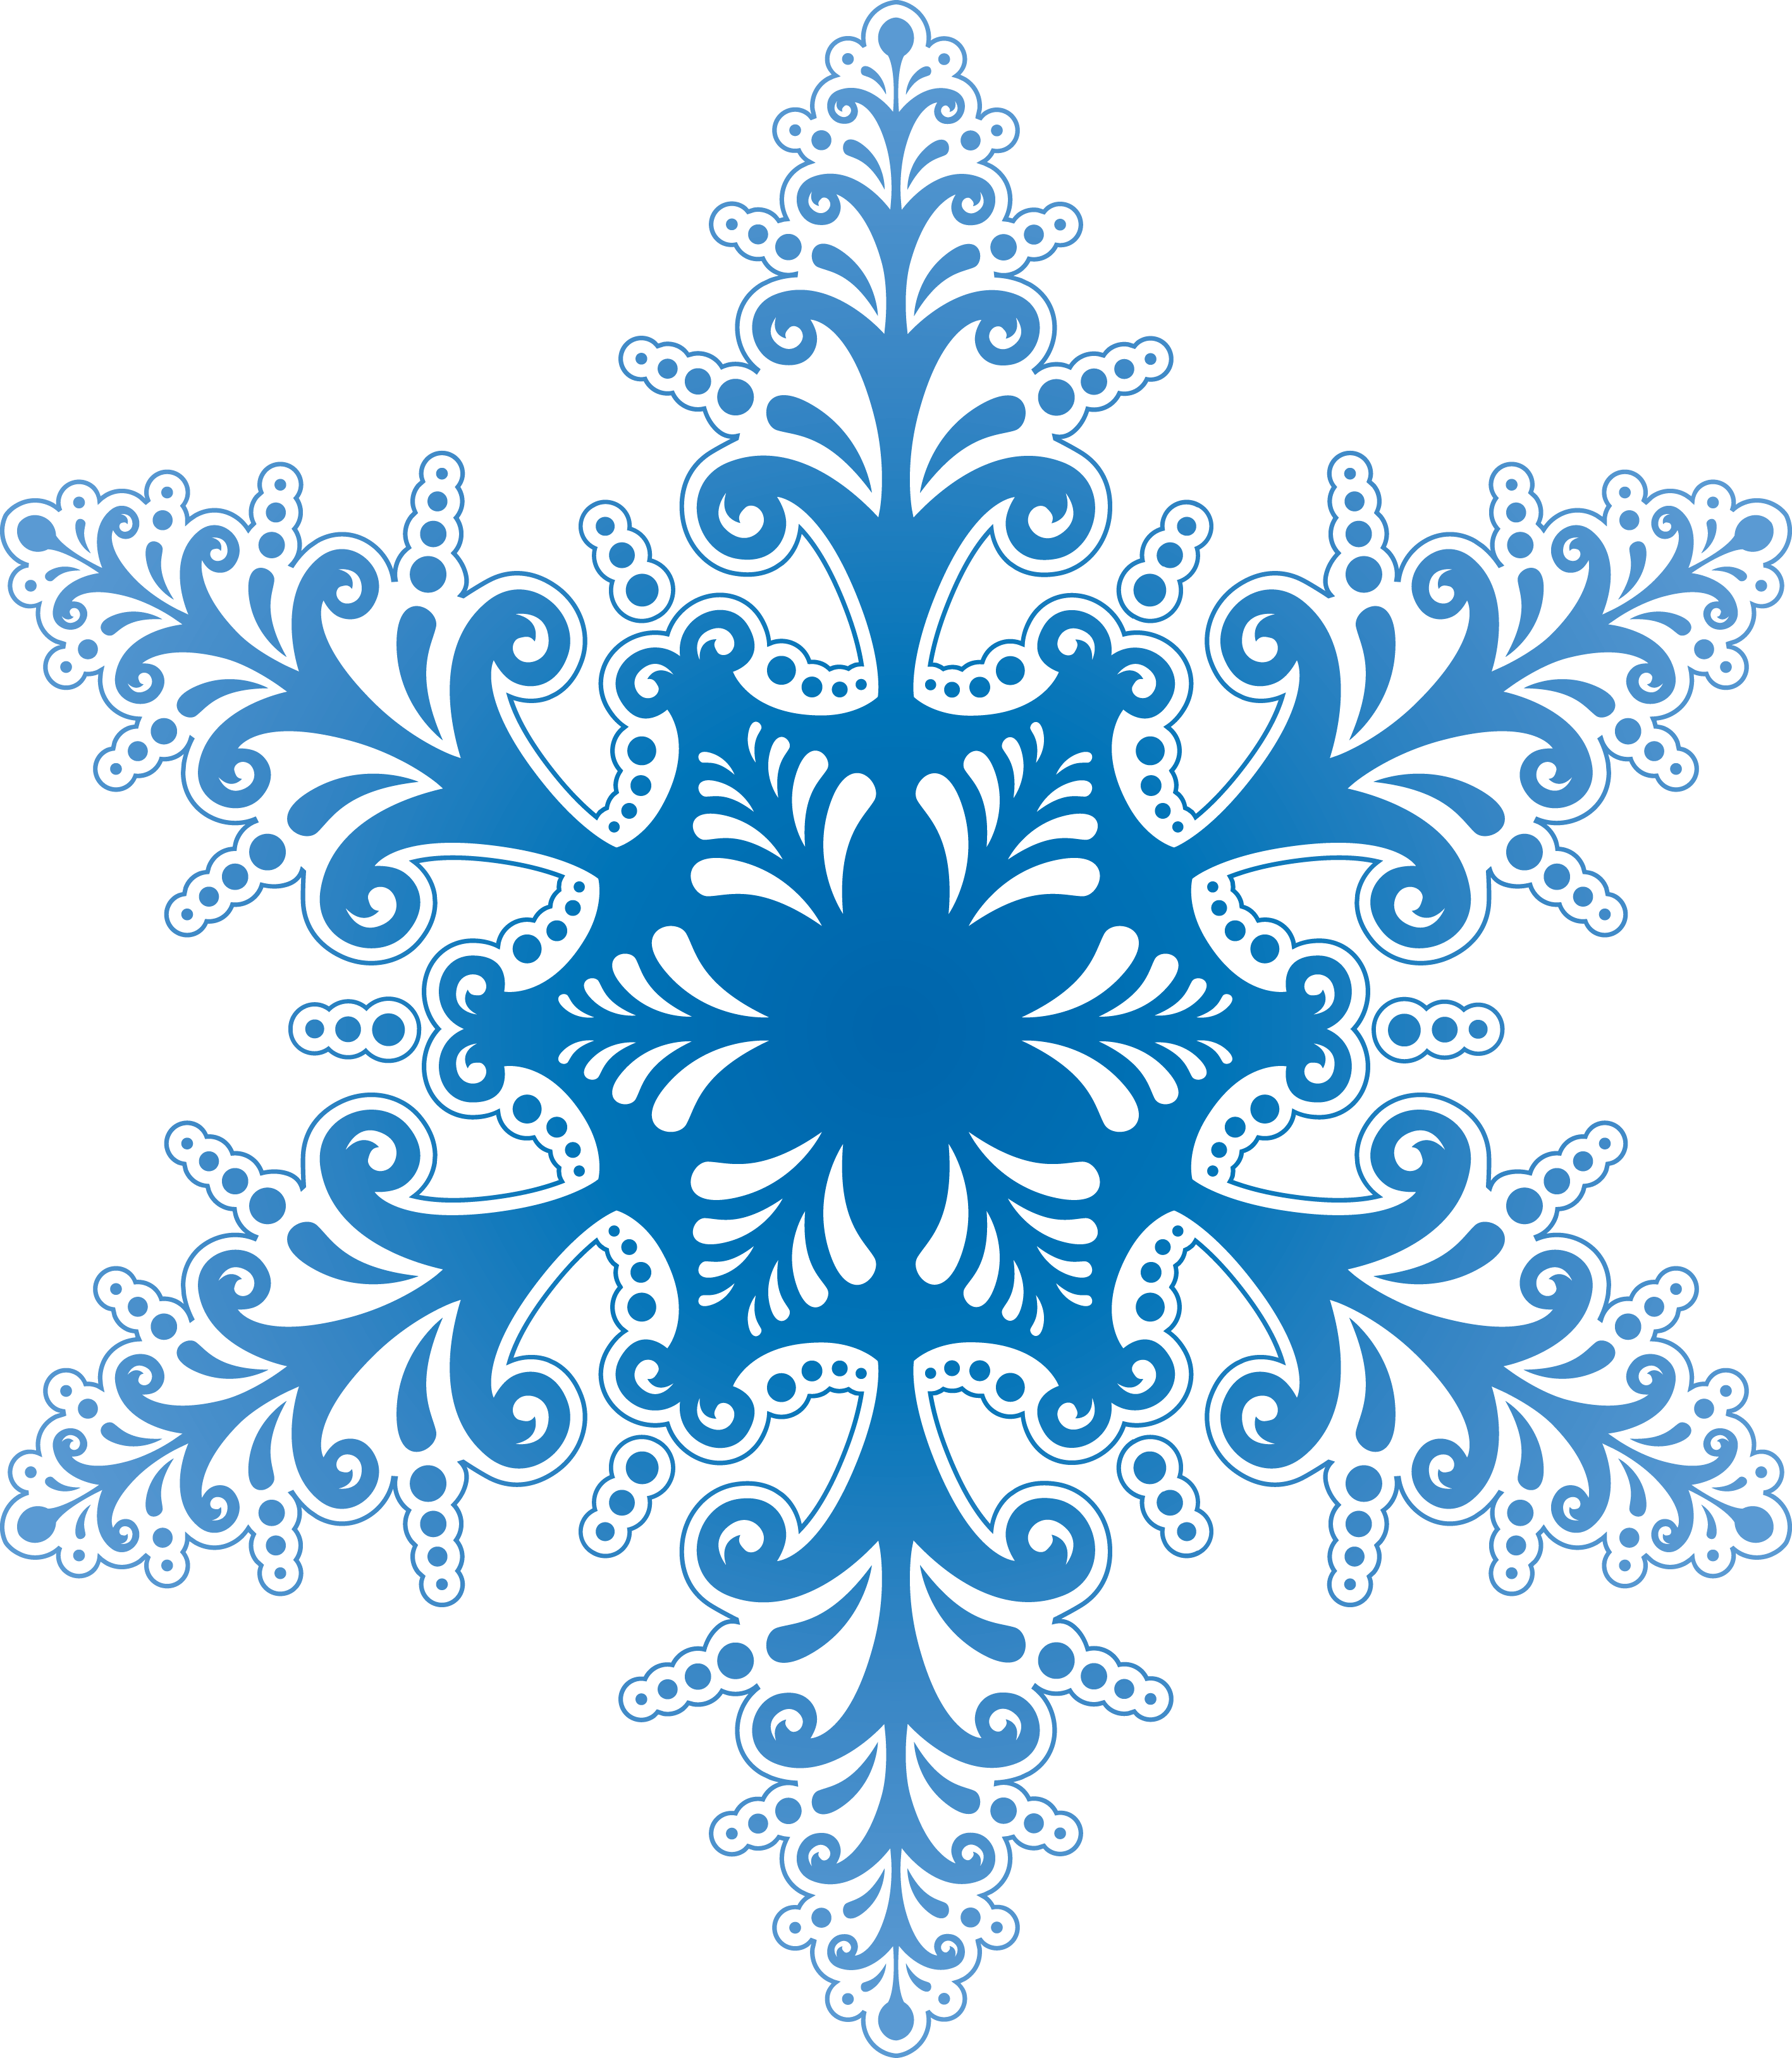 Blowing snowflake clipart clipart black and white library 61-snowflake-png-image.png (2834×3255) | ялинкові іграшки | Pinterest clipart black and white library